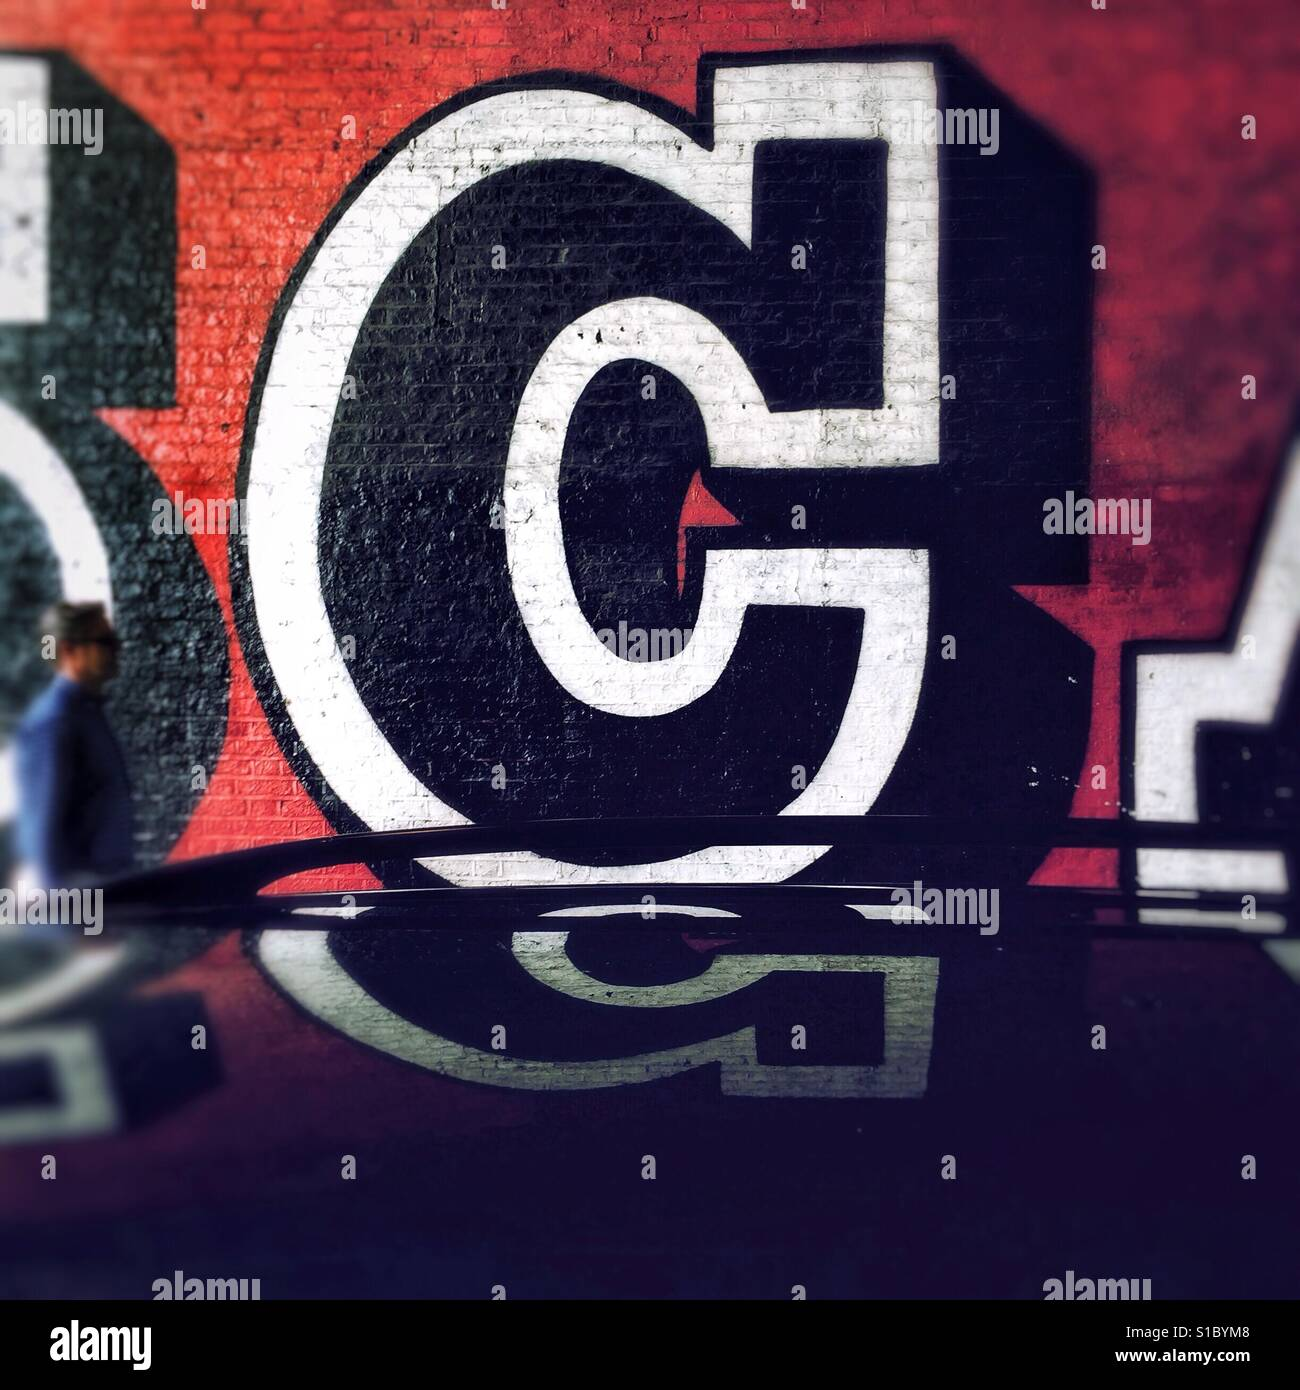 Detail from graffiti art by street artist Ben Eine, showing a colourful, stylised letter C, reflected on a car roof - Stock Image